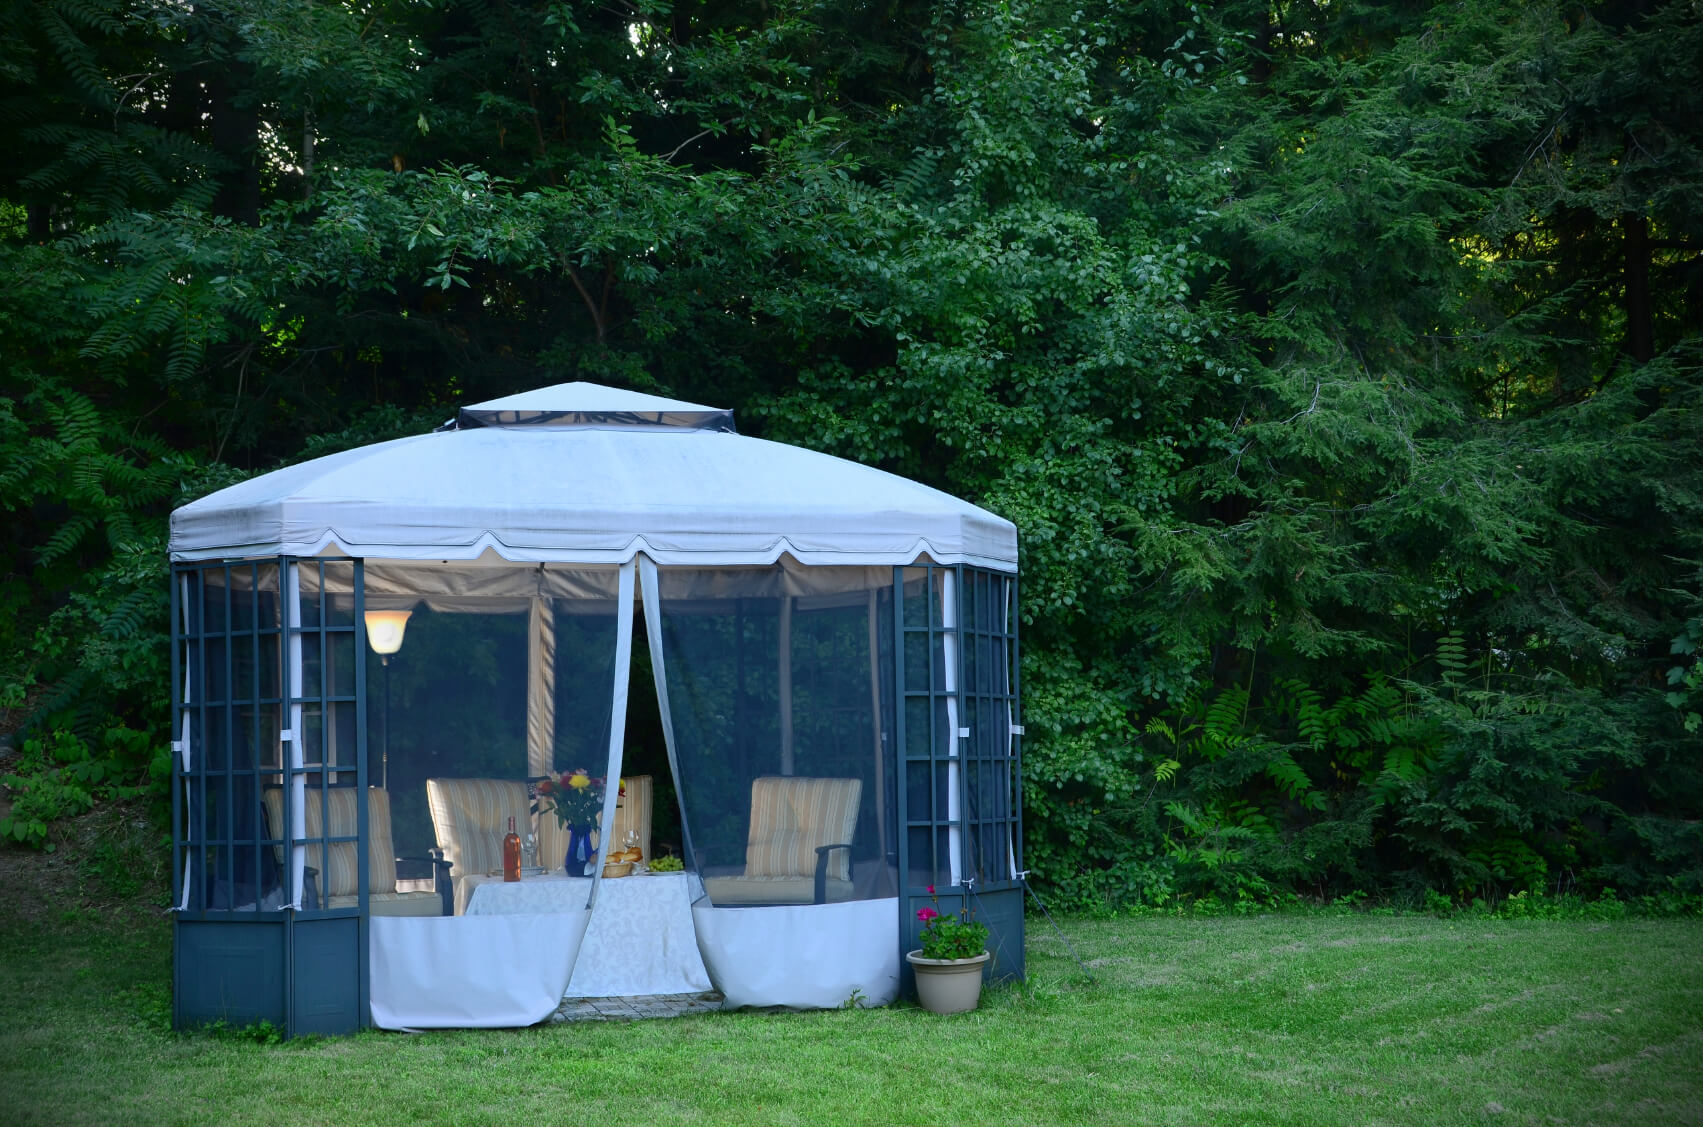 27 gazebos with screens for bug free backyard relaxation - Attractive patio gazebo canopy designs for inviting outdoor room ...